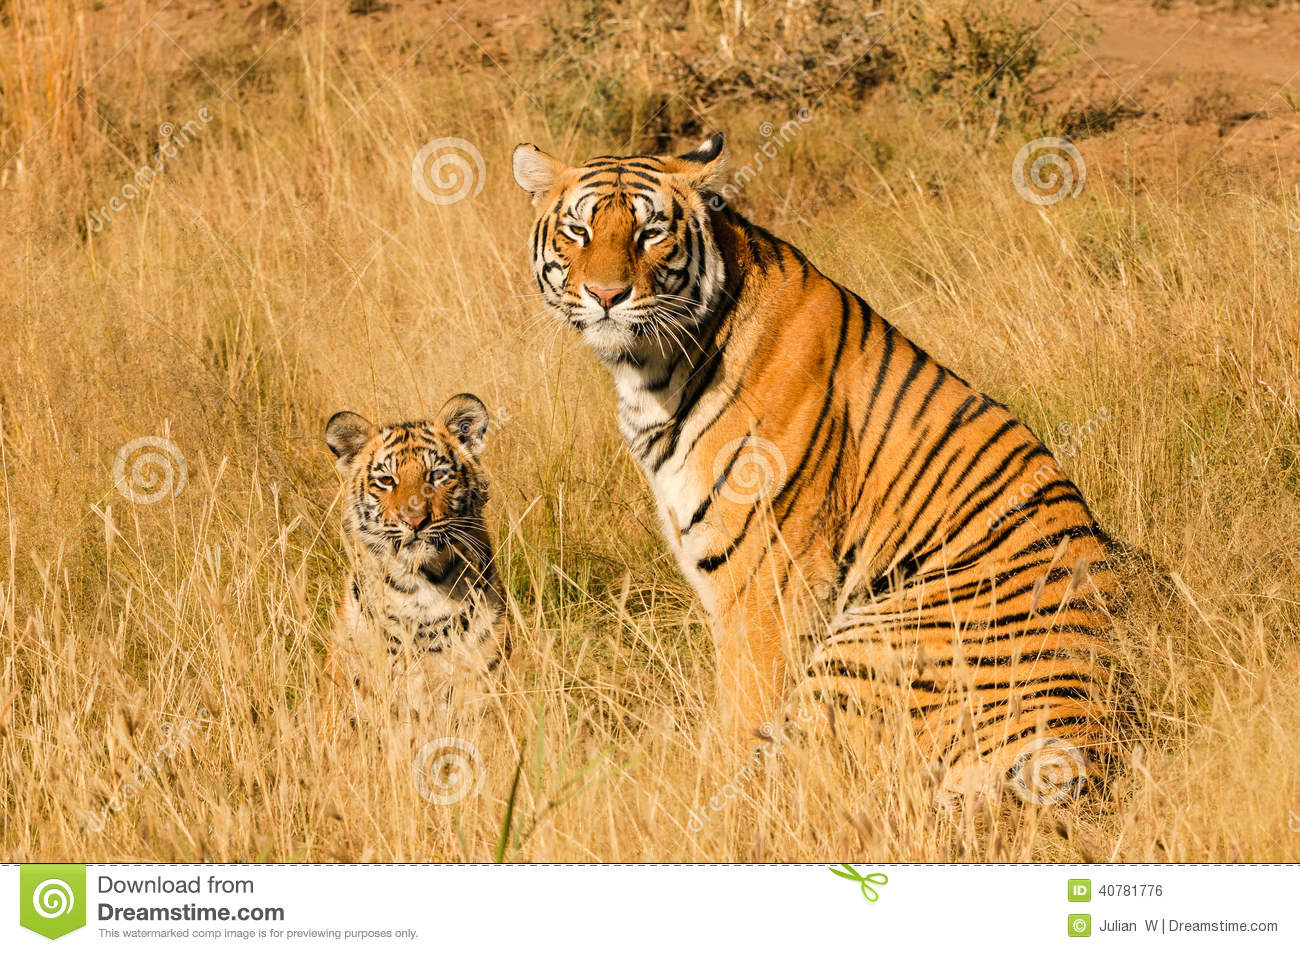 Tiger with her cub